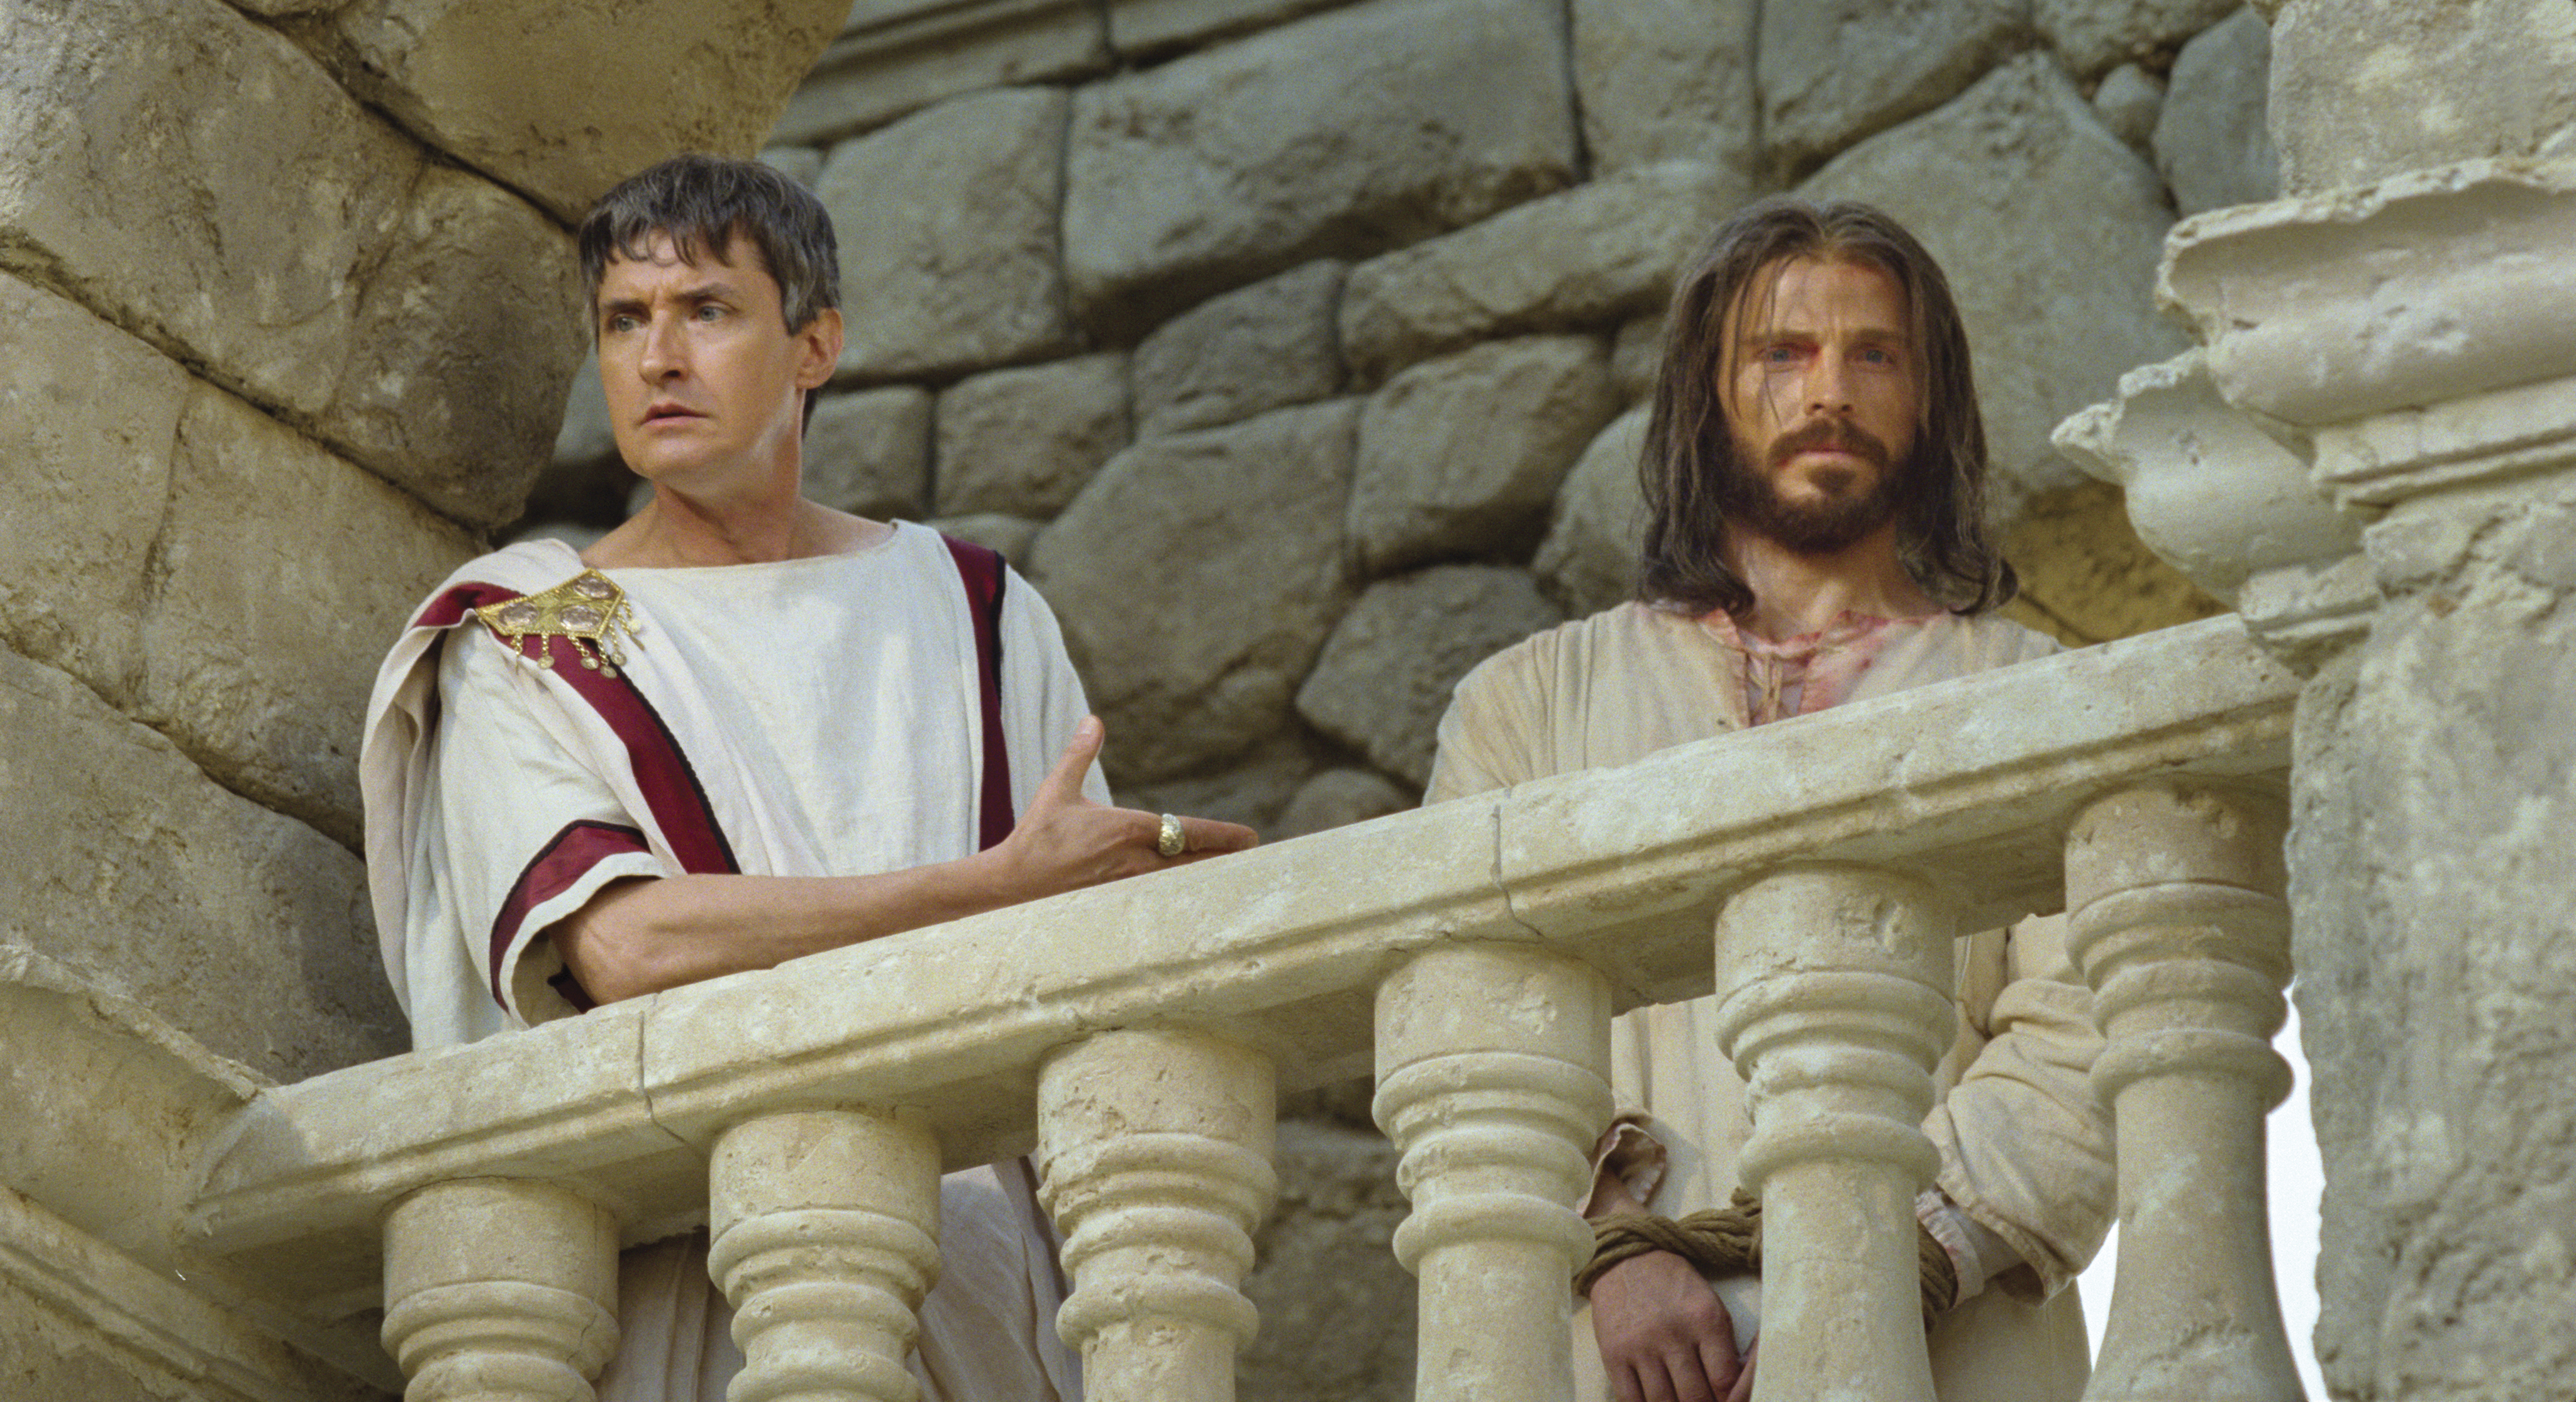 Pilate speaks to the crowd that condemns Christ.